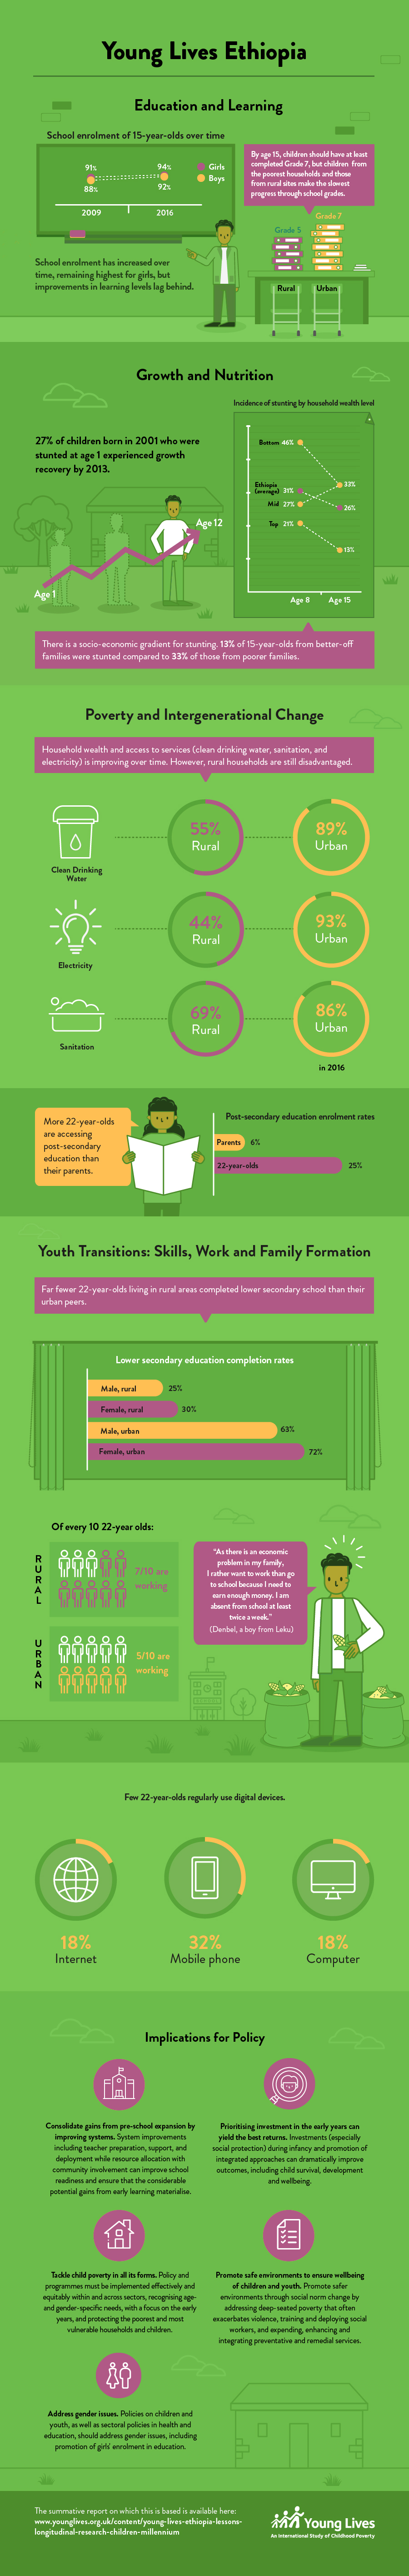 Young Lives Ethiopia infographic